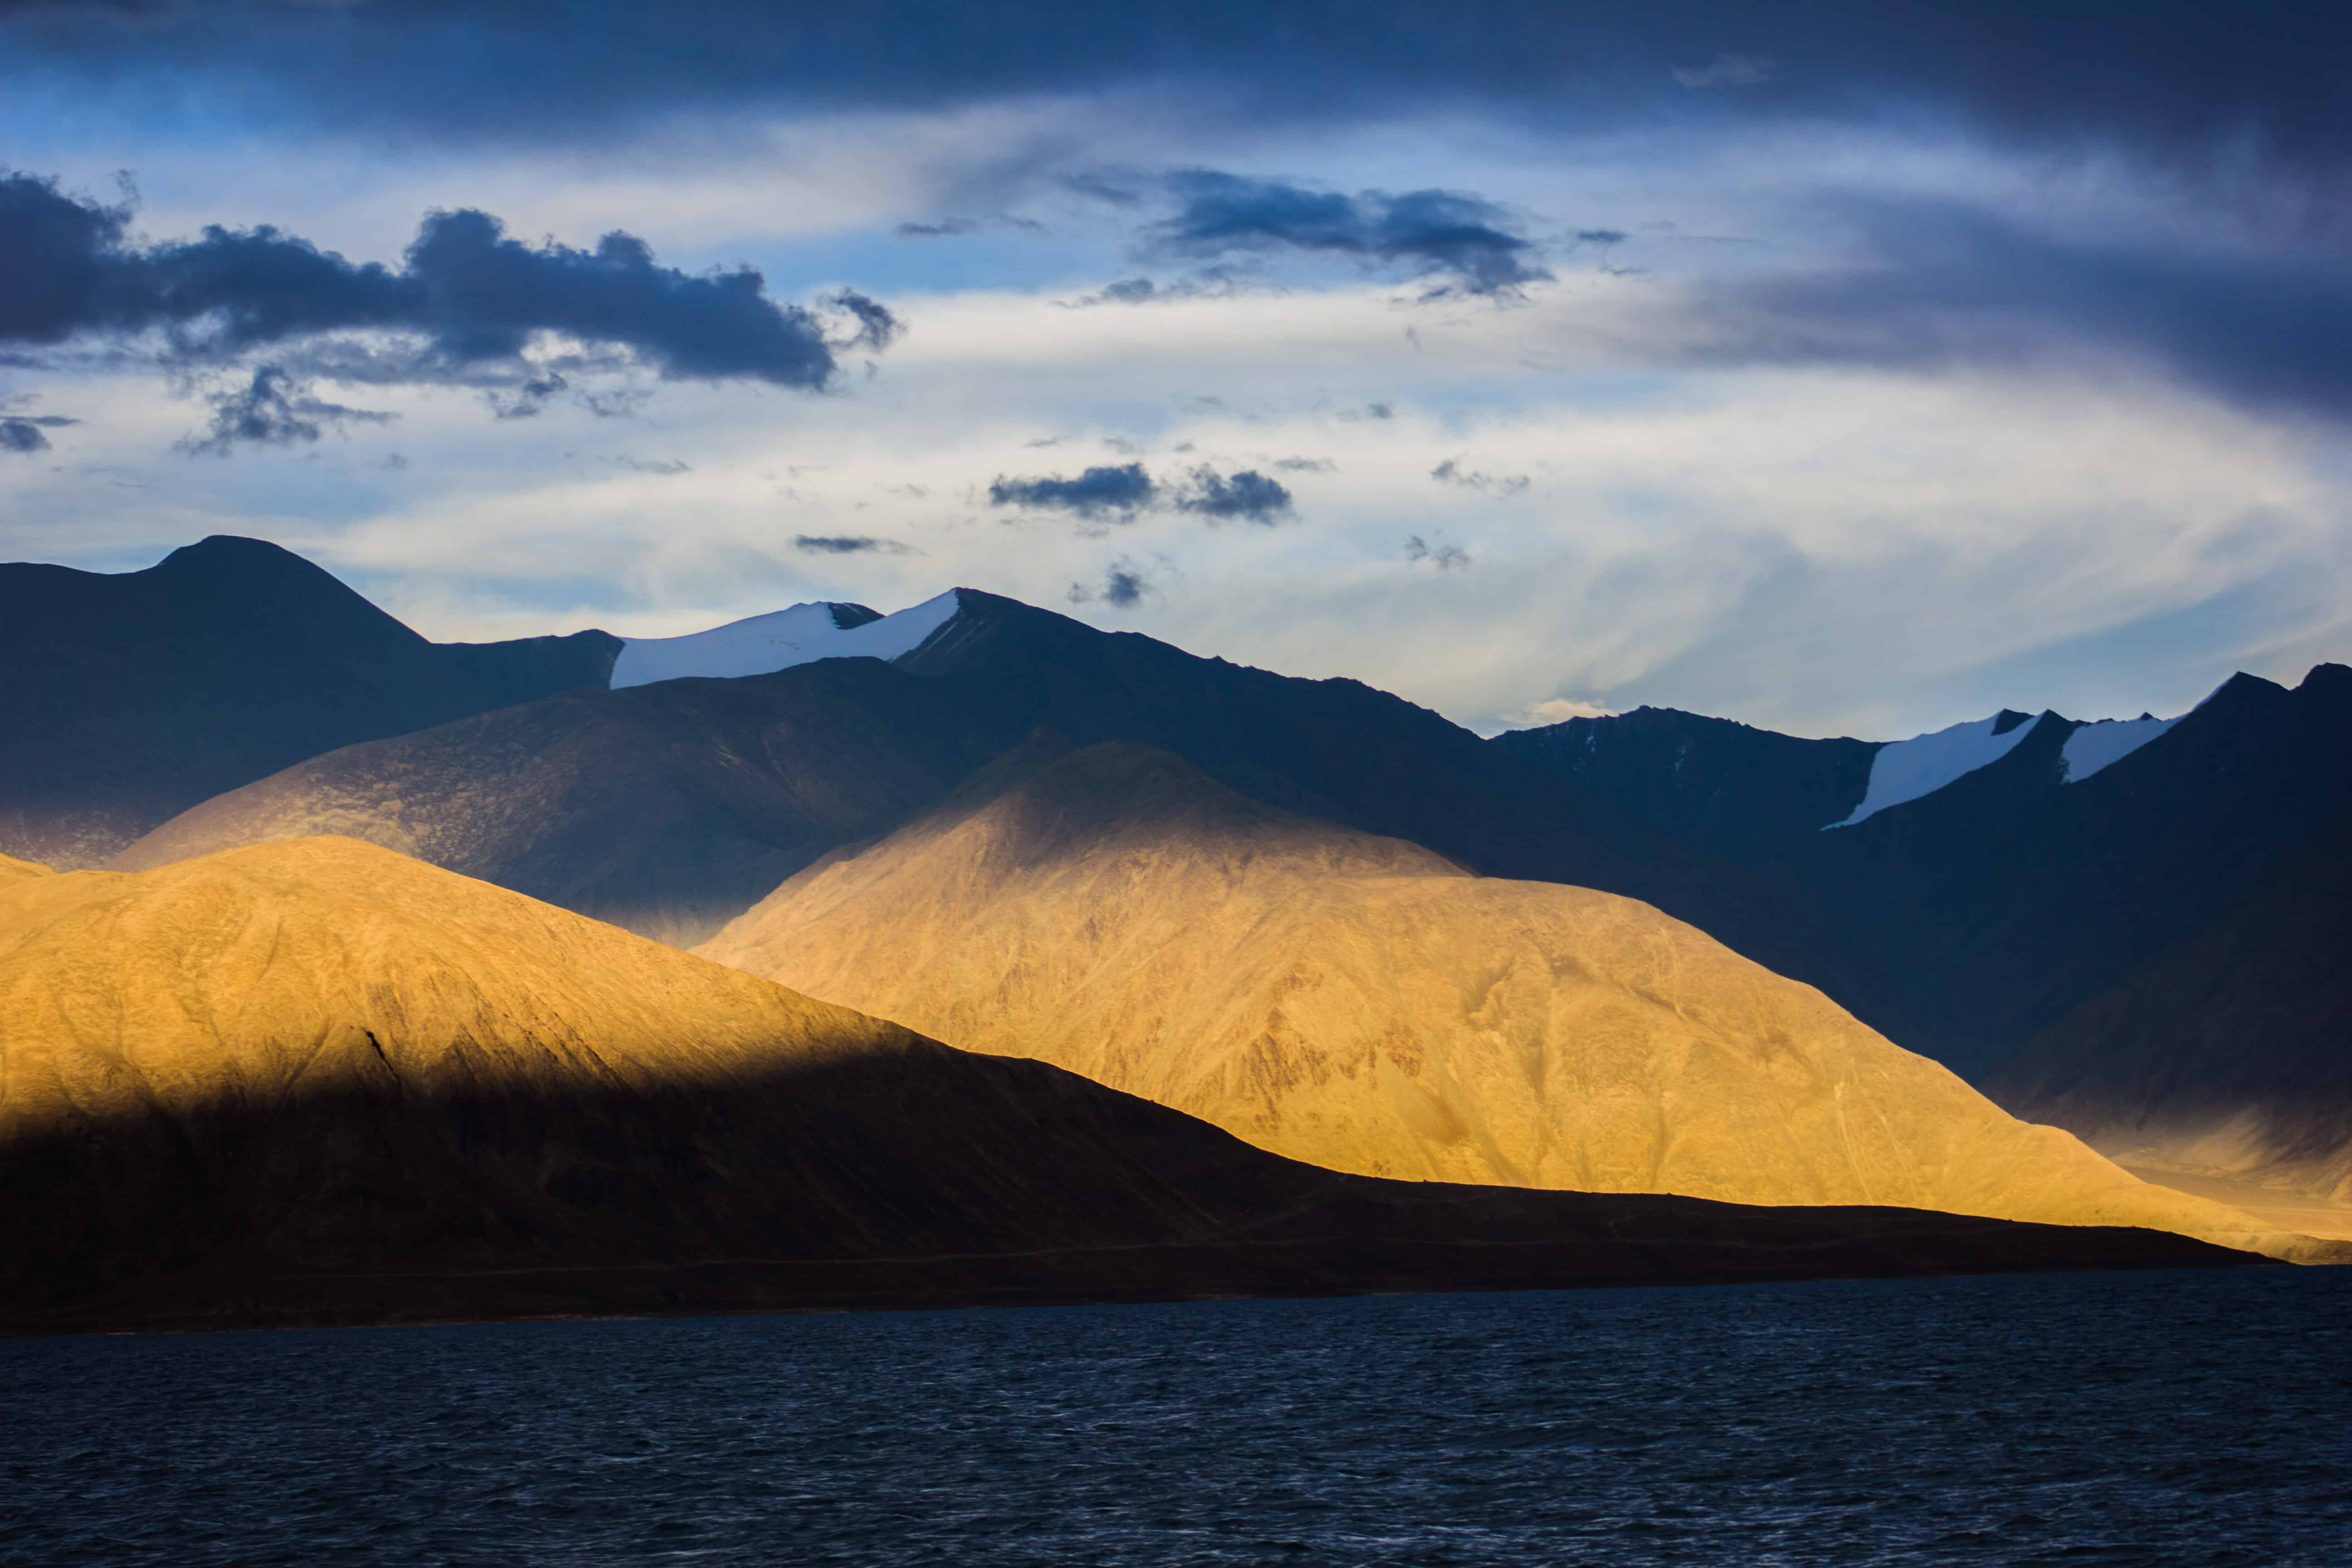 Sun Playing Hide and Seek at Pangong Tso - Ladakh